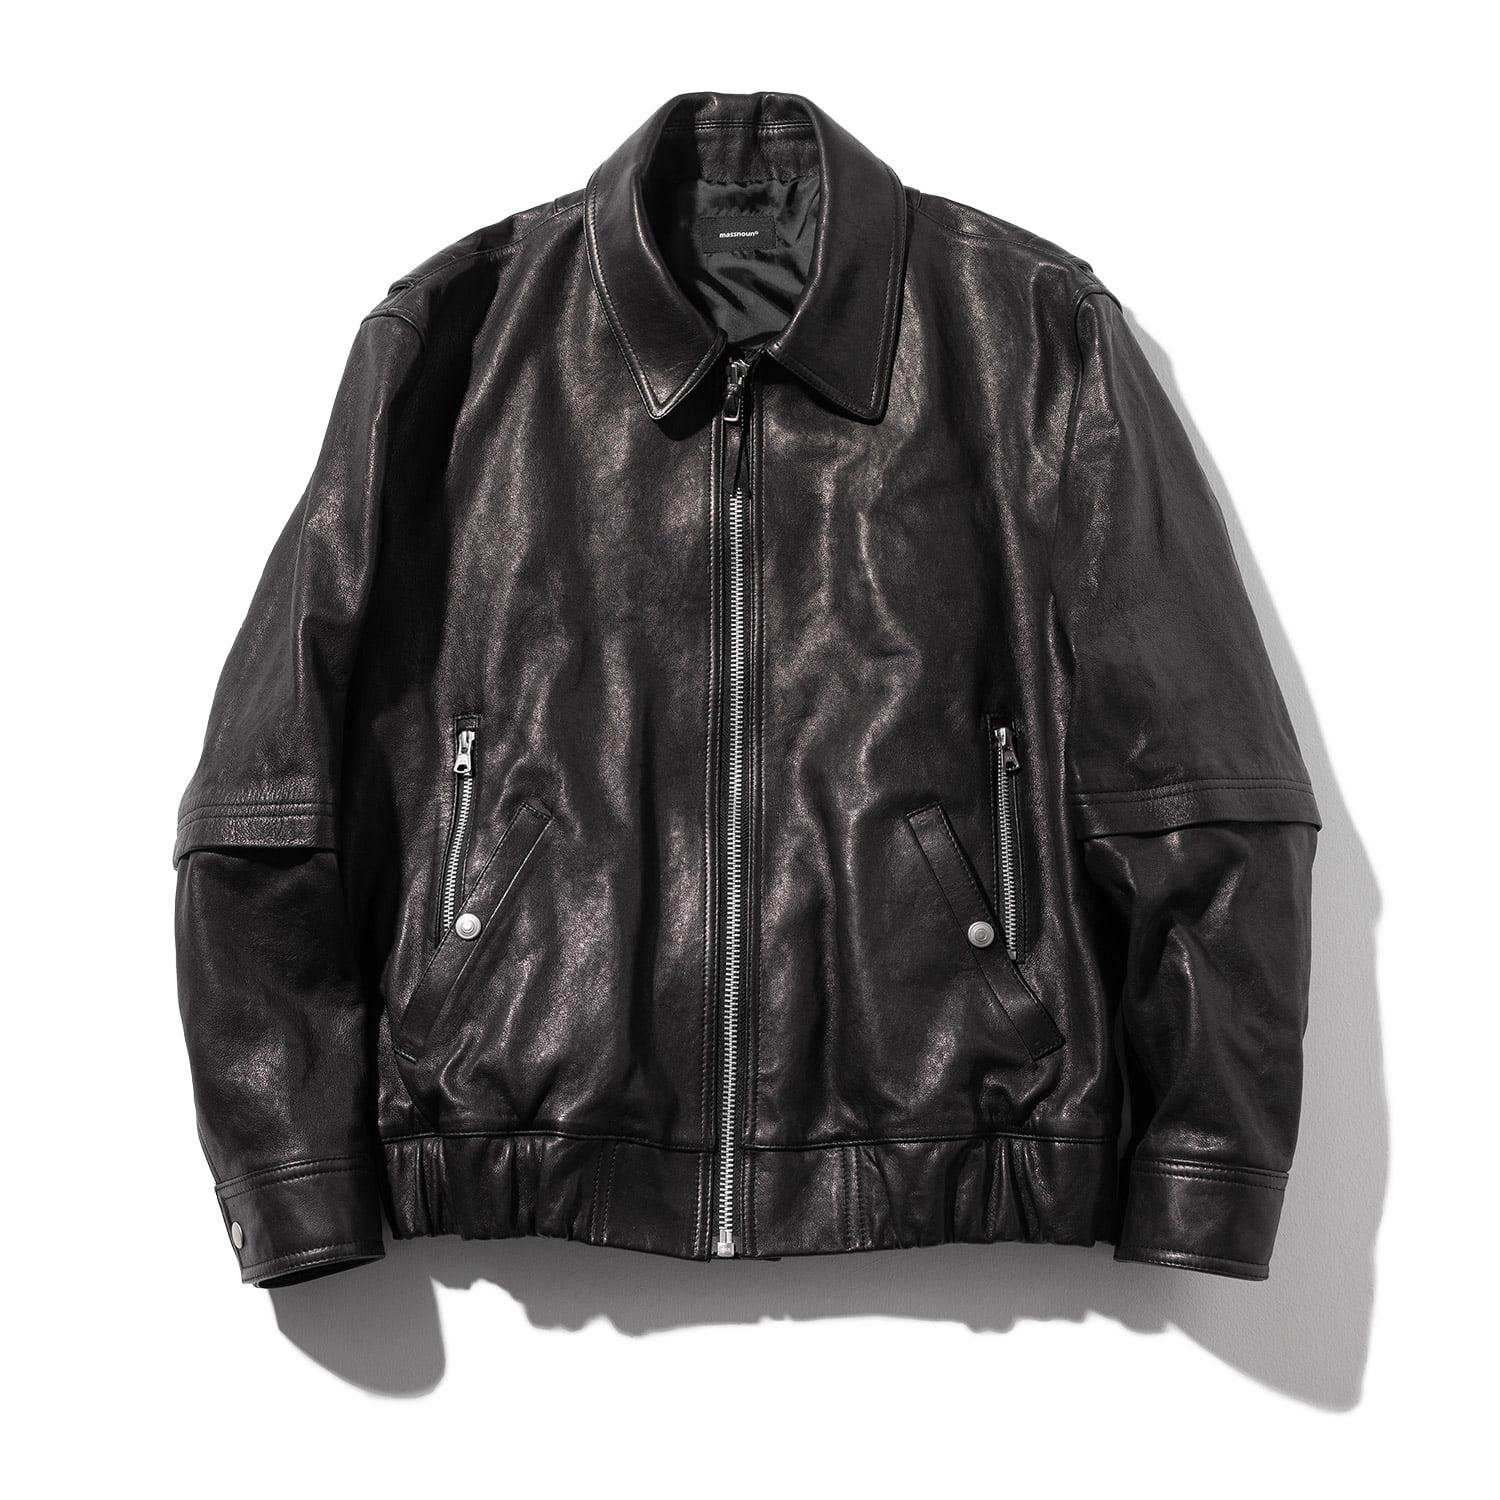 LAMBSKIN VEGETABLE DOUBLE POCKET BLOUSON MFZJK003-BK